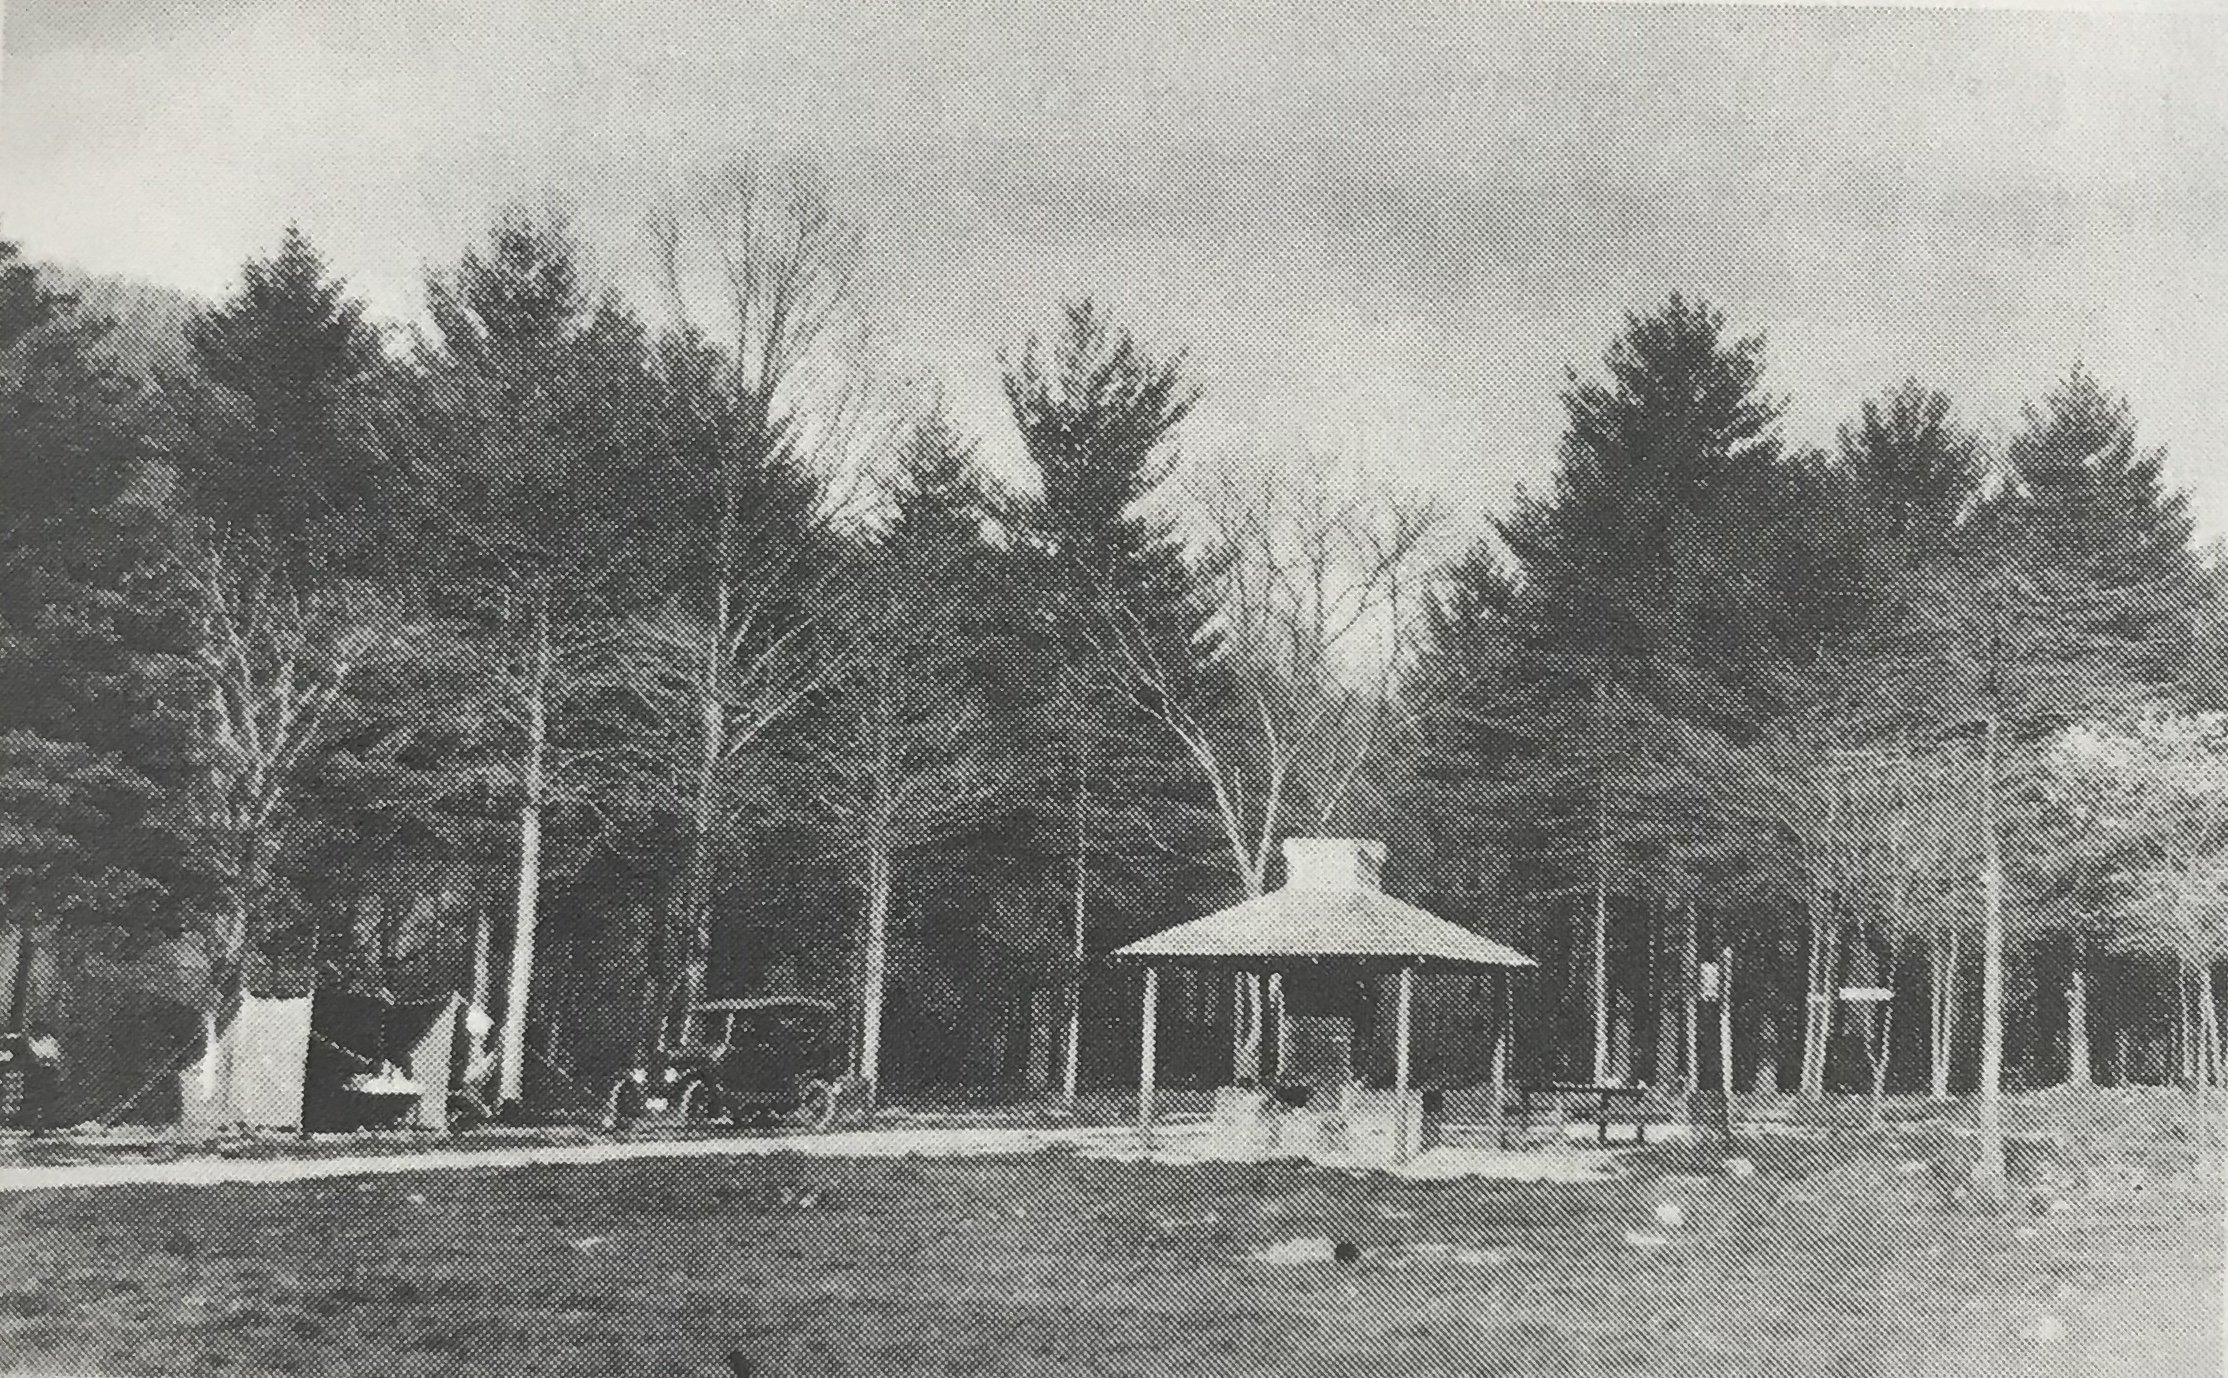 This is a picture of Caledonia State Forest Park's public campground, taken in May of 1924 (Lincoln Highway Experience).